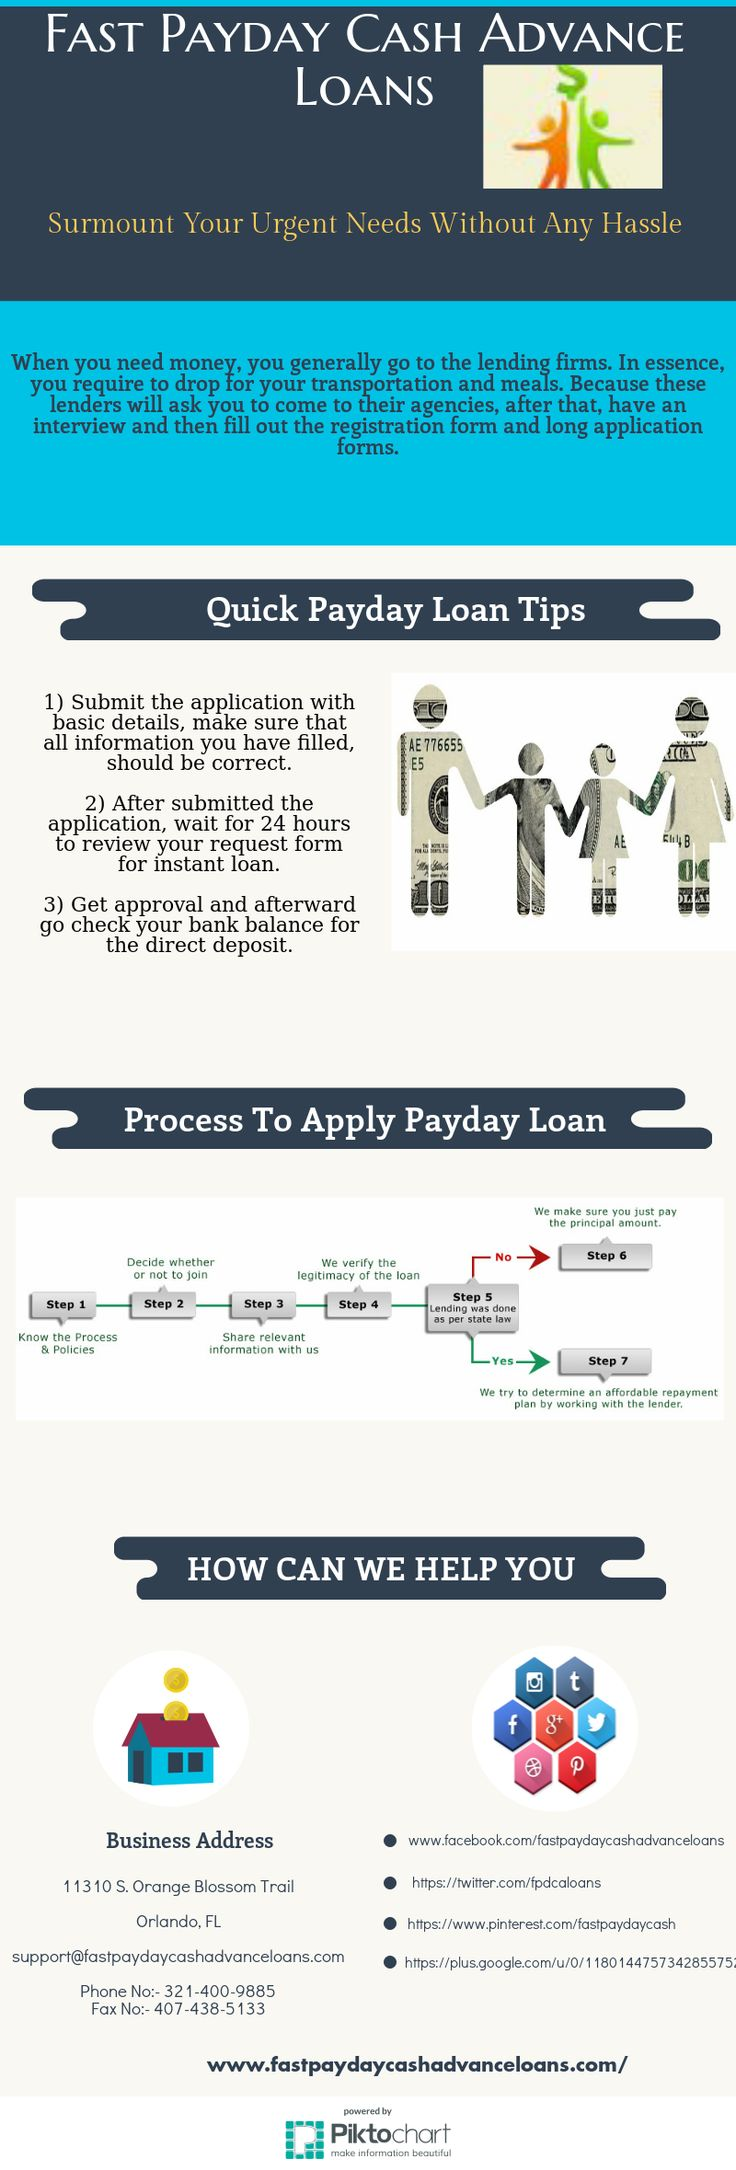 Payday loans in lexington tn image 7